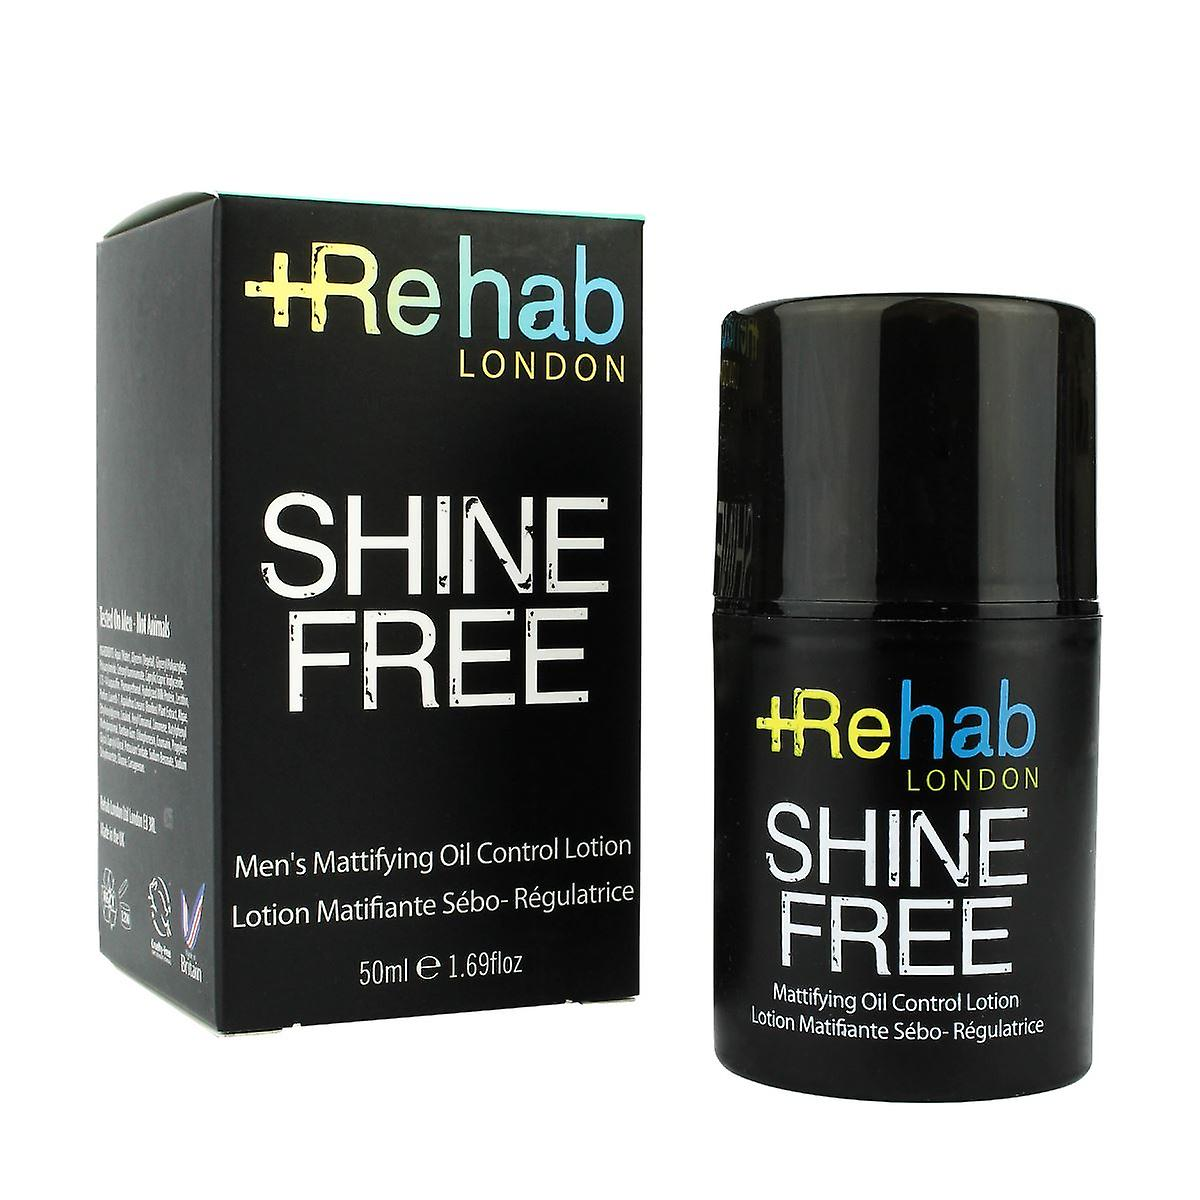 Rehab London Shine Free Men's Mattifying Oil Control Lotion 50ml